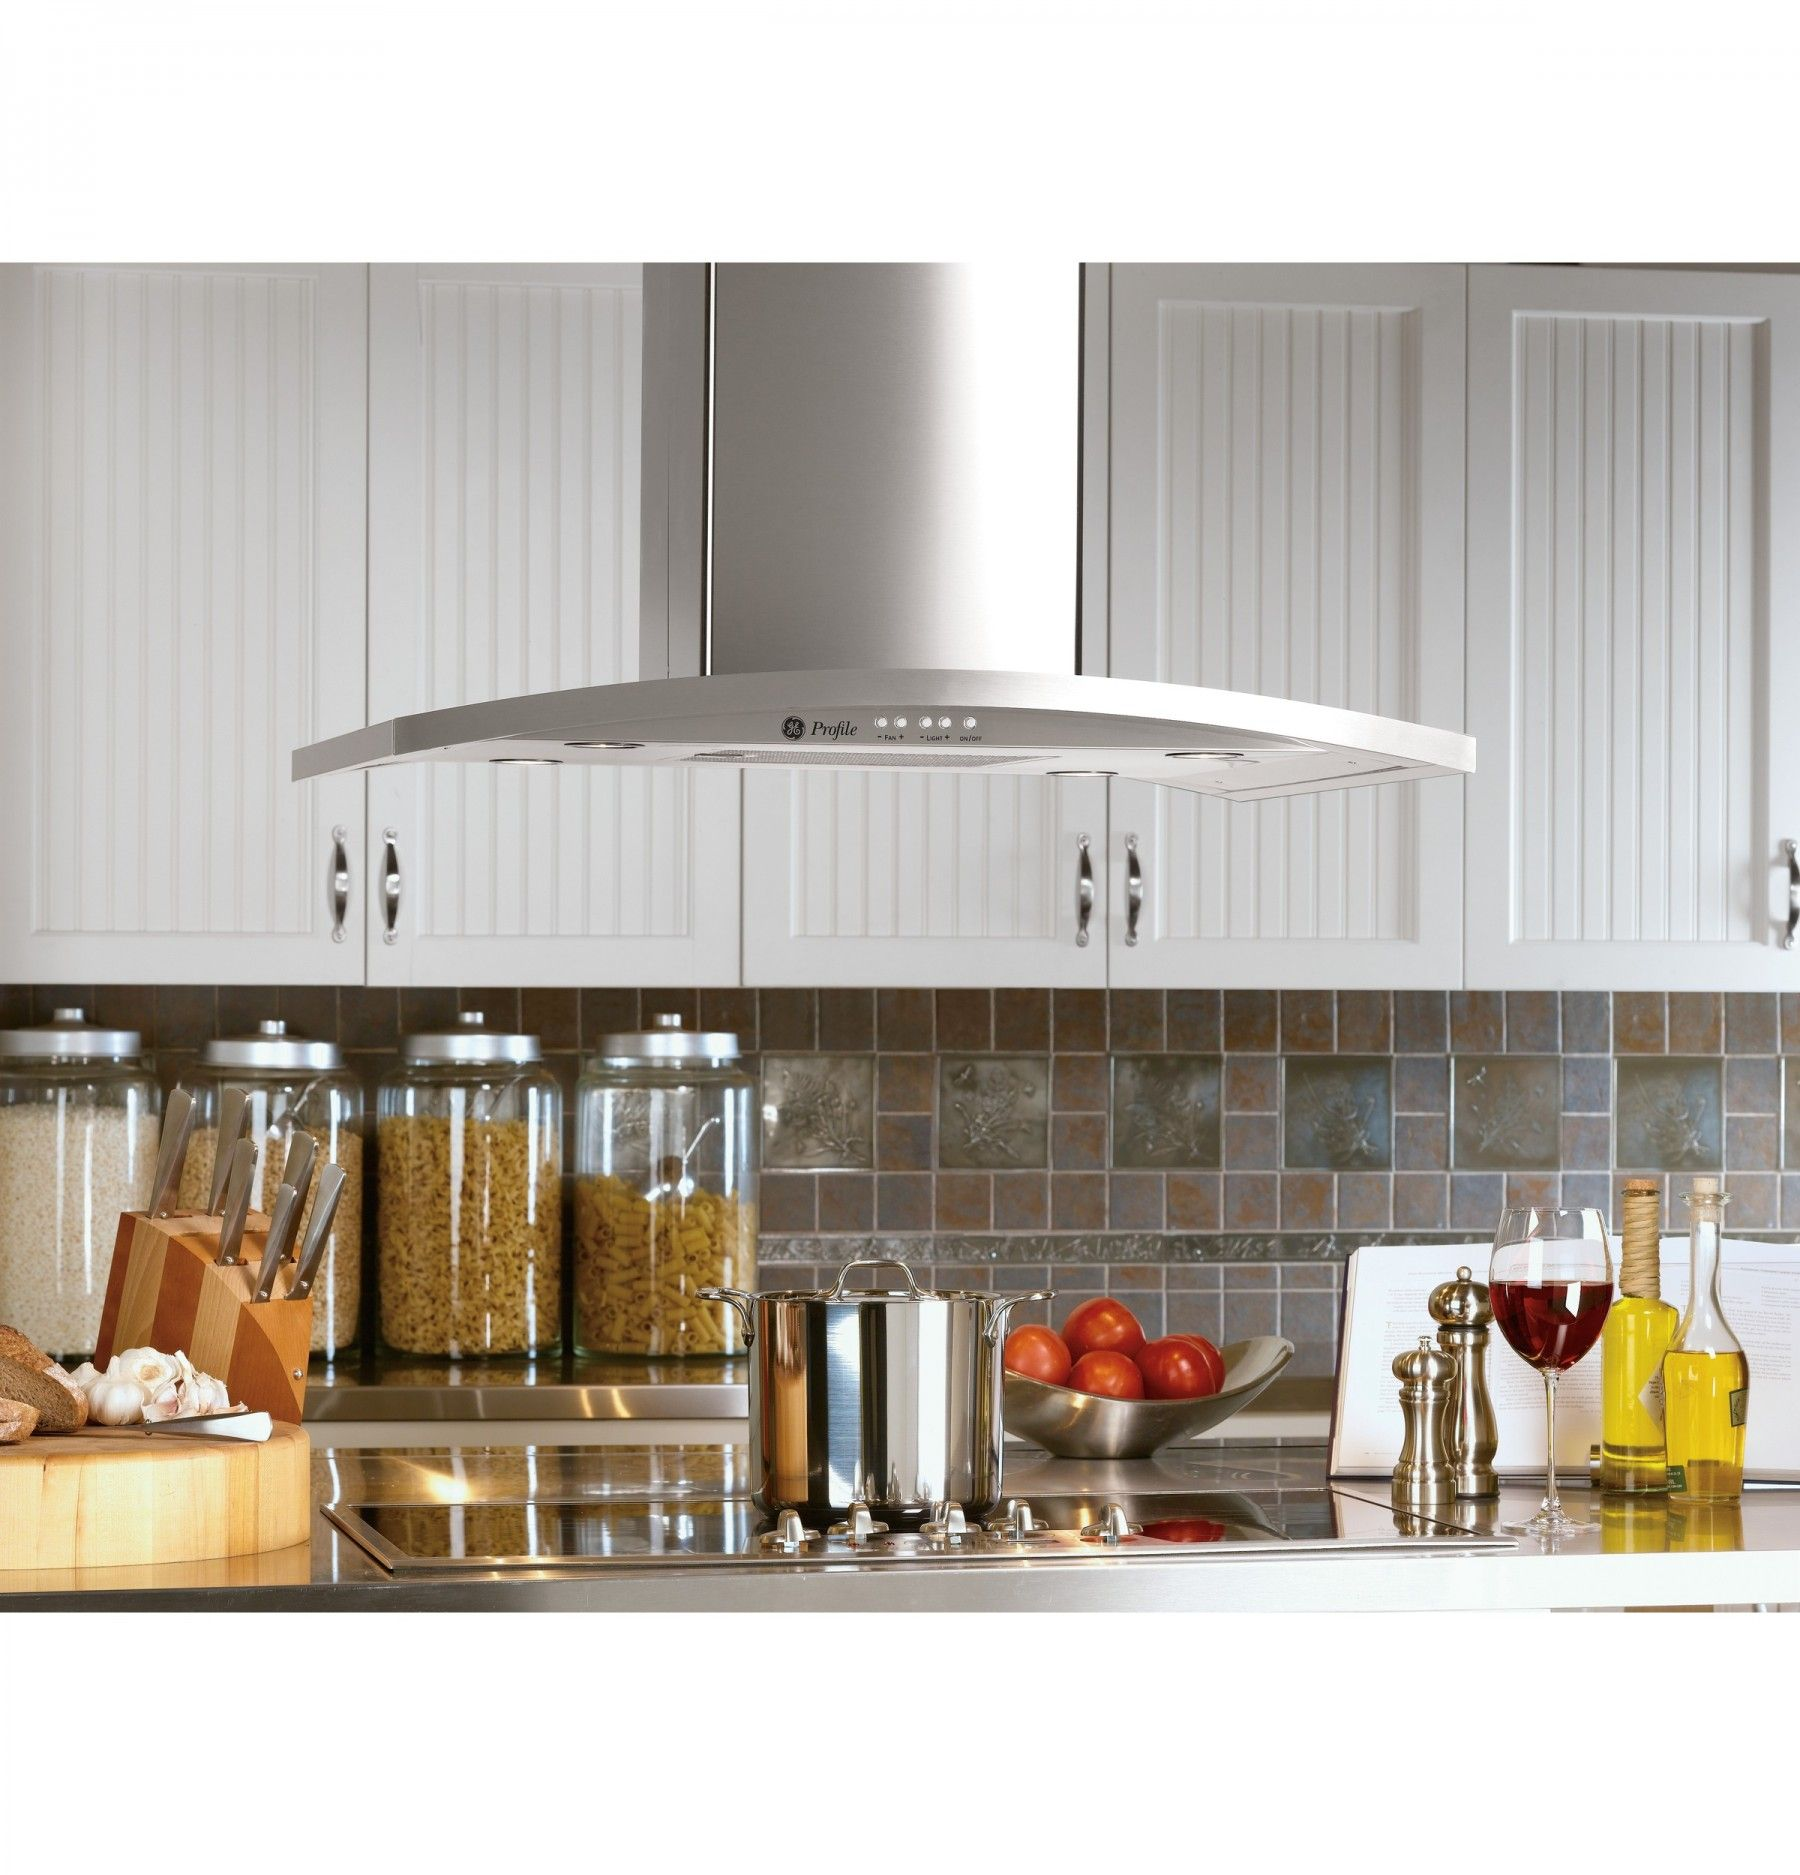 Ge Profile 36 Stainless Steel Chimney Style Island Mount Range Hood 450 Cfm Island Range Hood Range Hood Stainless Range Hood